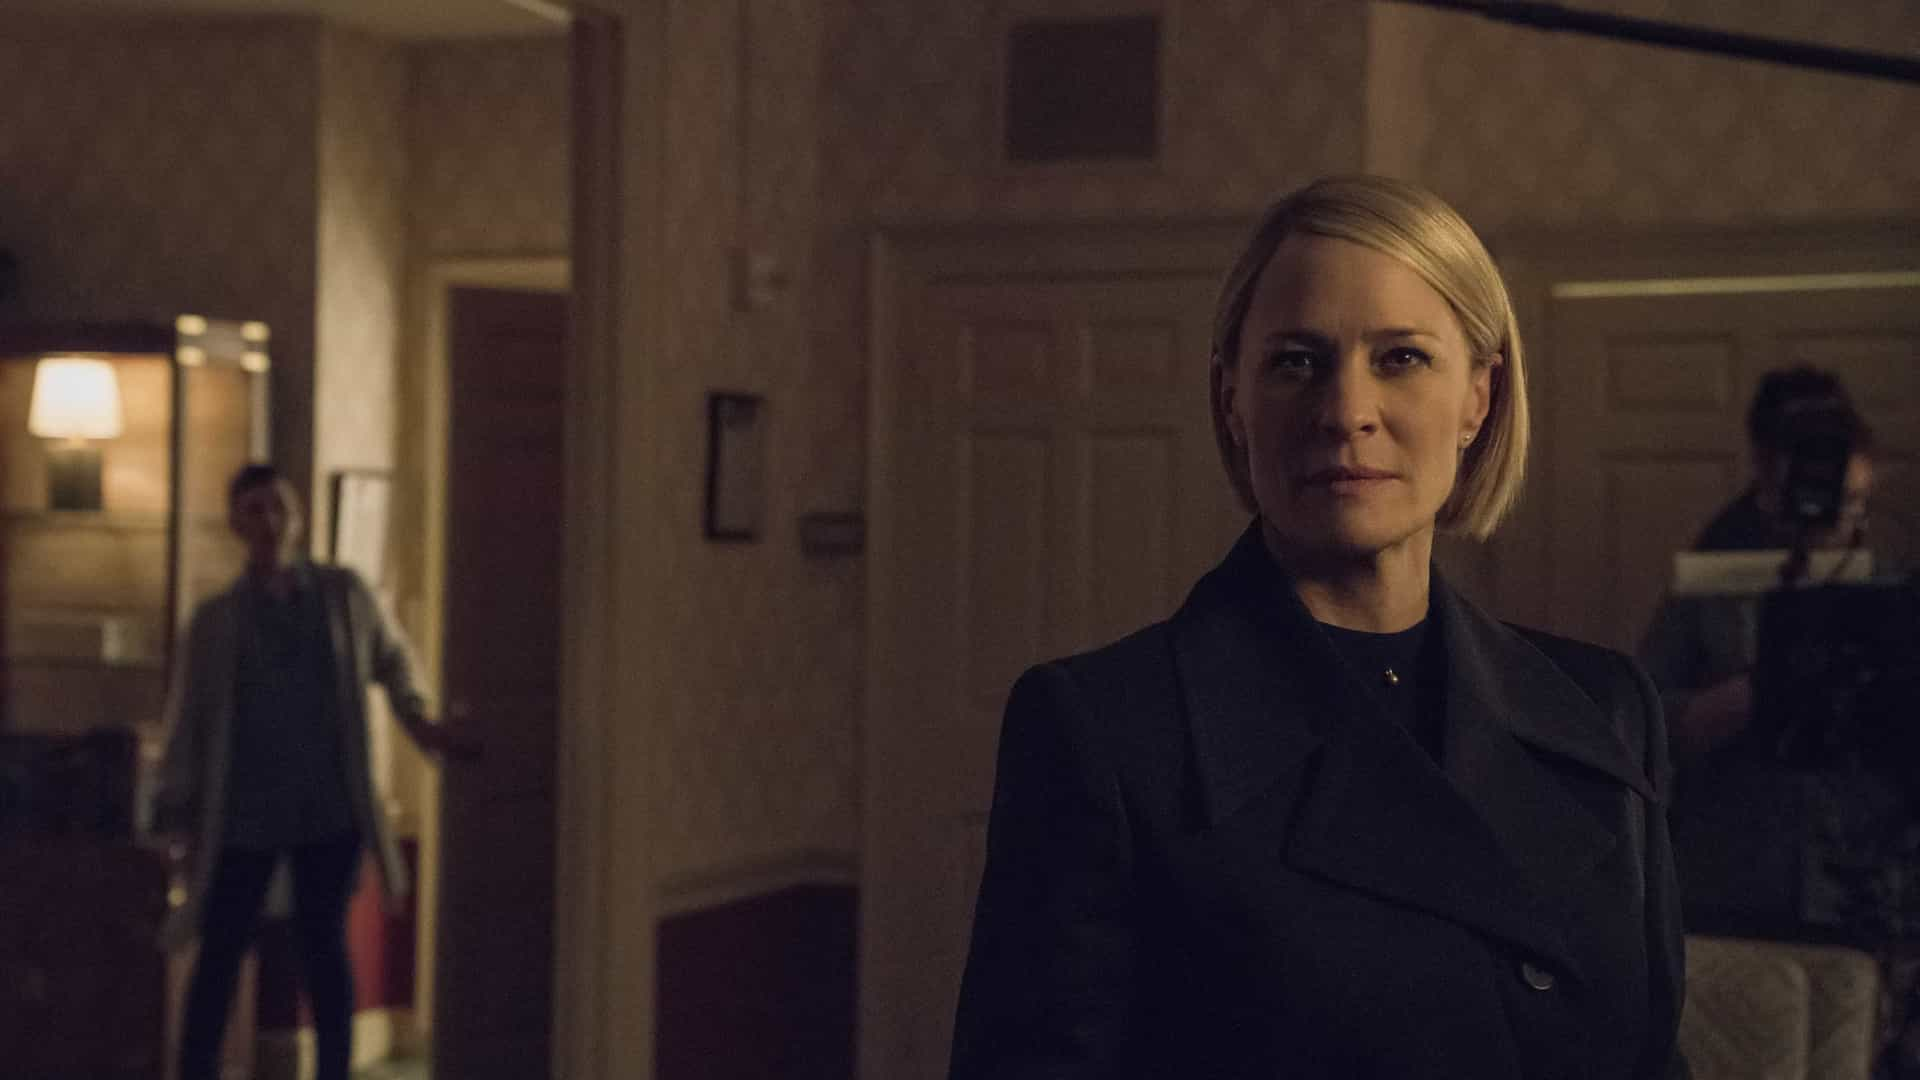 Netflix divulga fotos inéditas da temporada final de 'House of Cards'